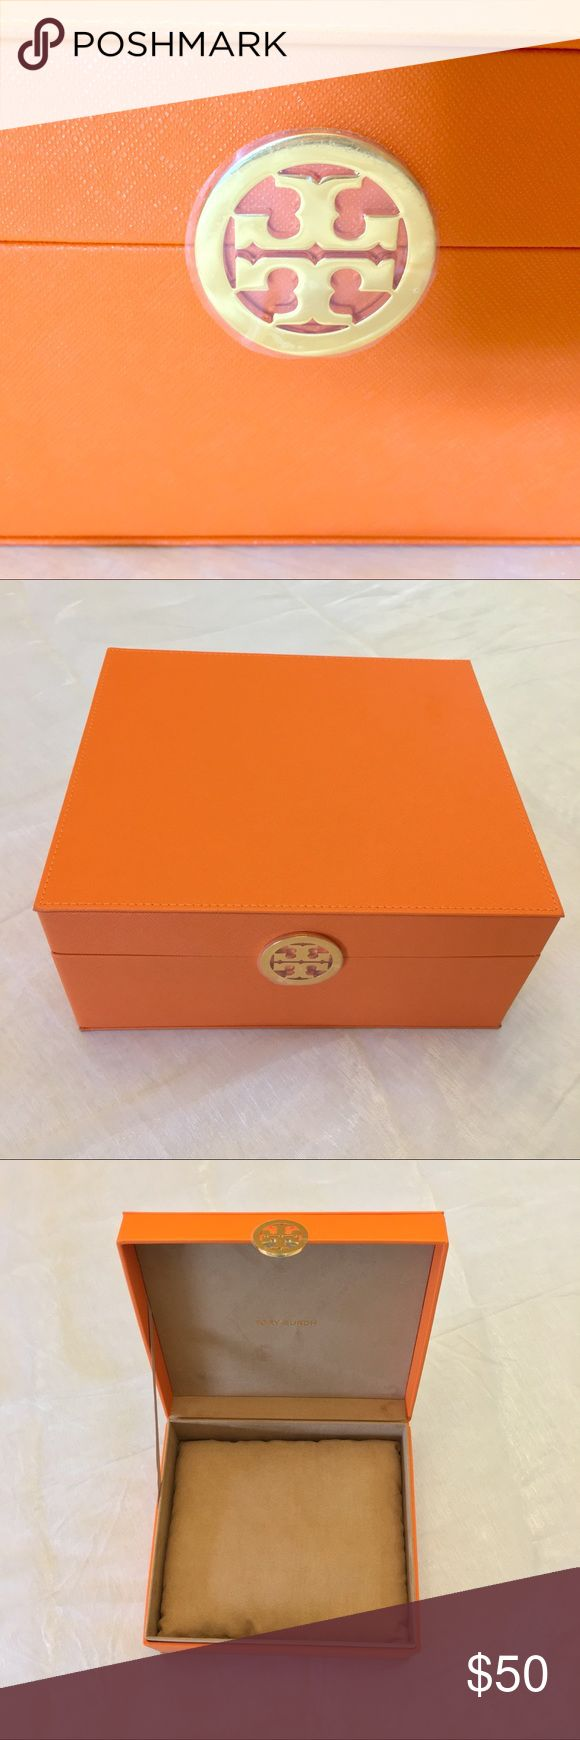 NEW Tory Burch Orange Box Brand New Tory Burch box. Never used and with pillow to store your jewelry on. Was a GWP when purchased Tory Burch jewelry. Tory Burch Jewelry